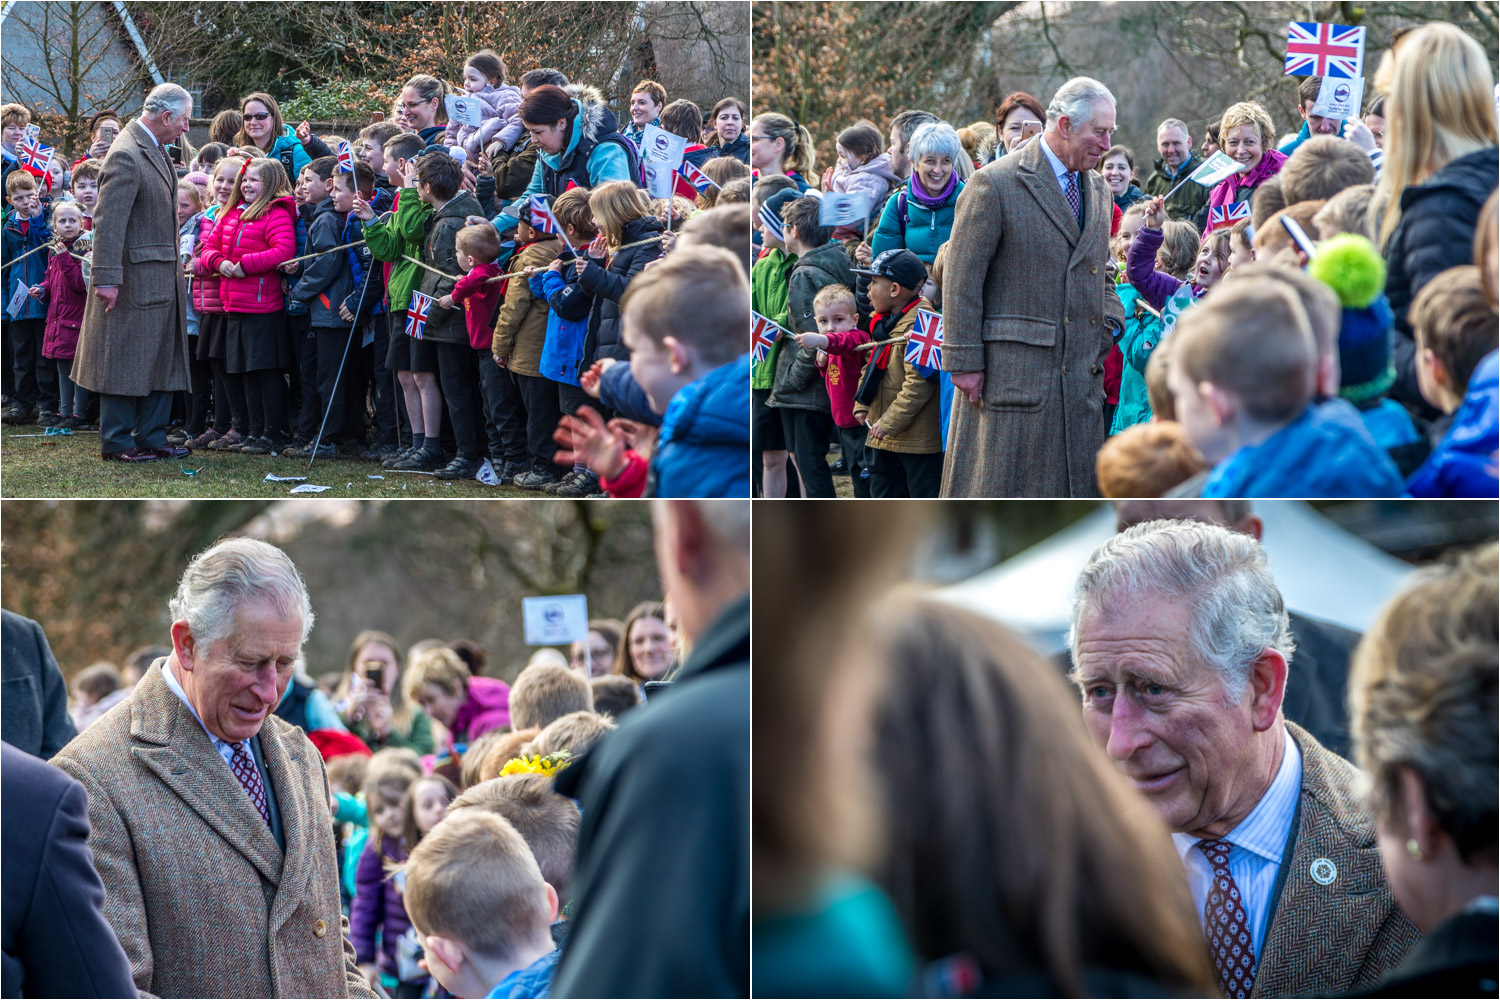 Prince Charles is here to unveil a plaque marking the status of the Lake District as a World Heritage Site